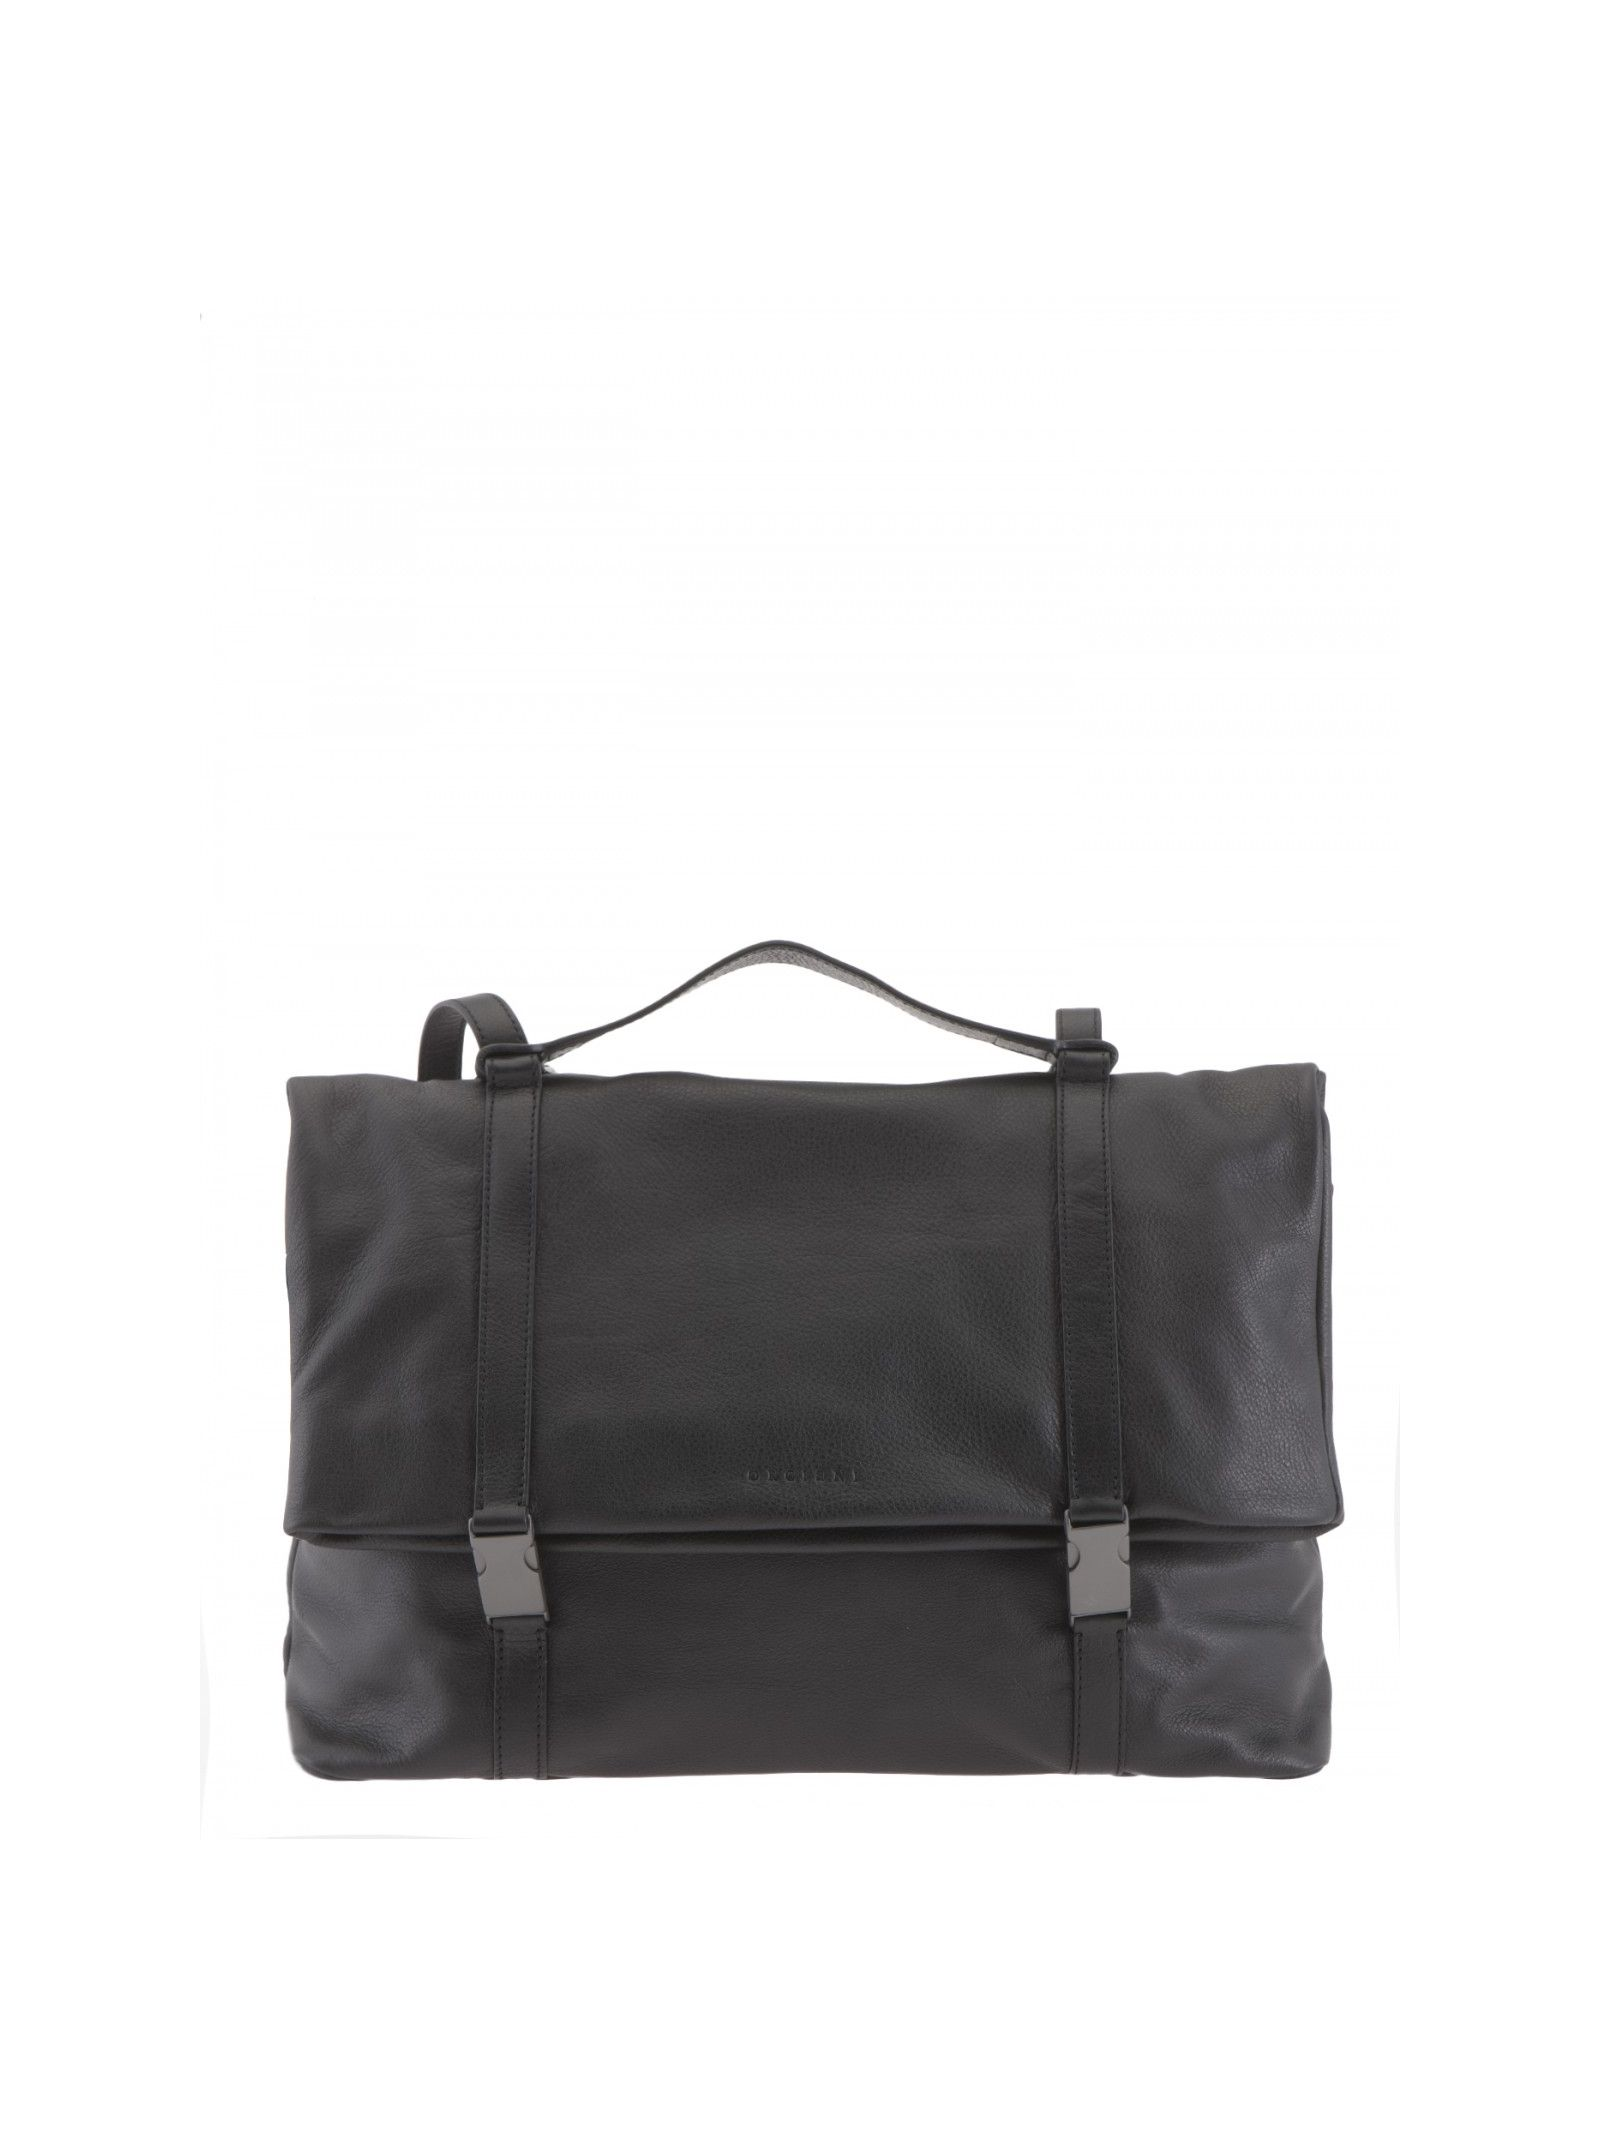 Orciani Grained Leather Bag